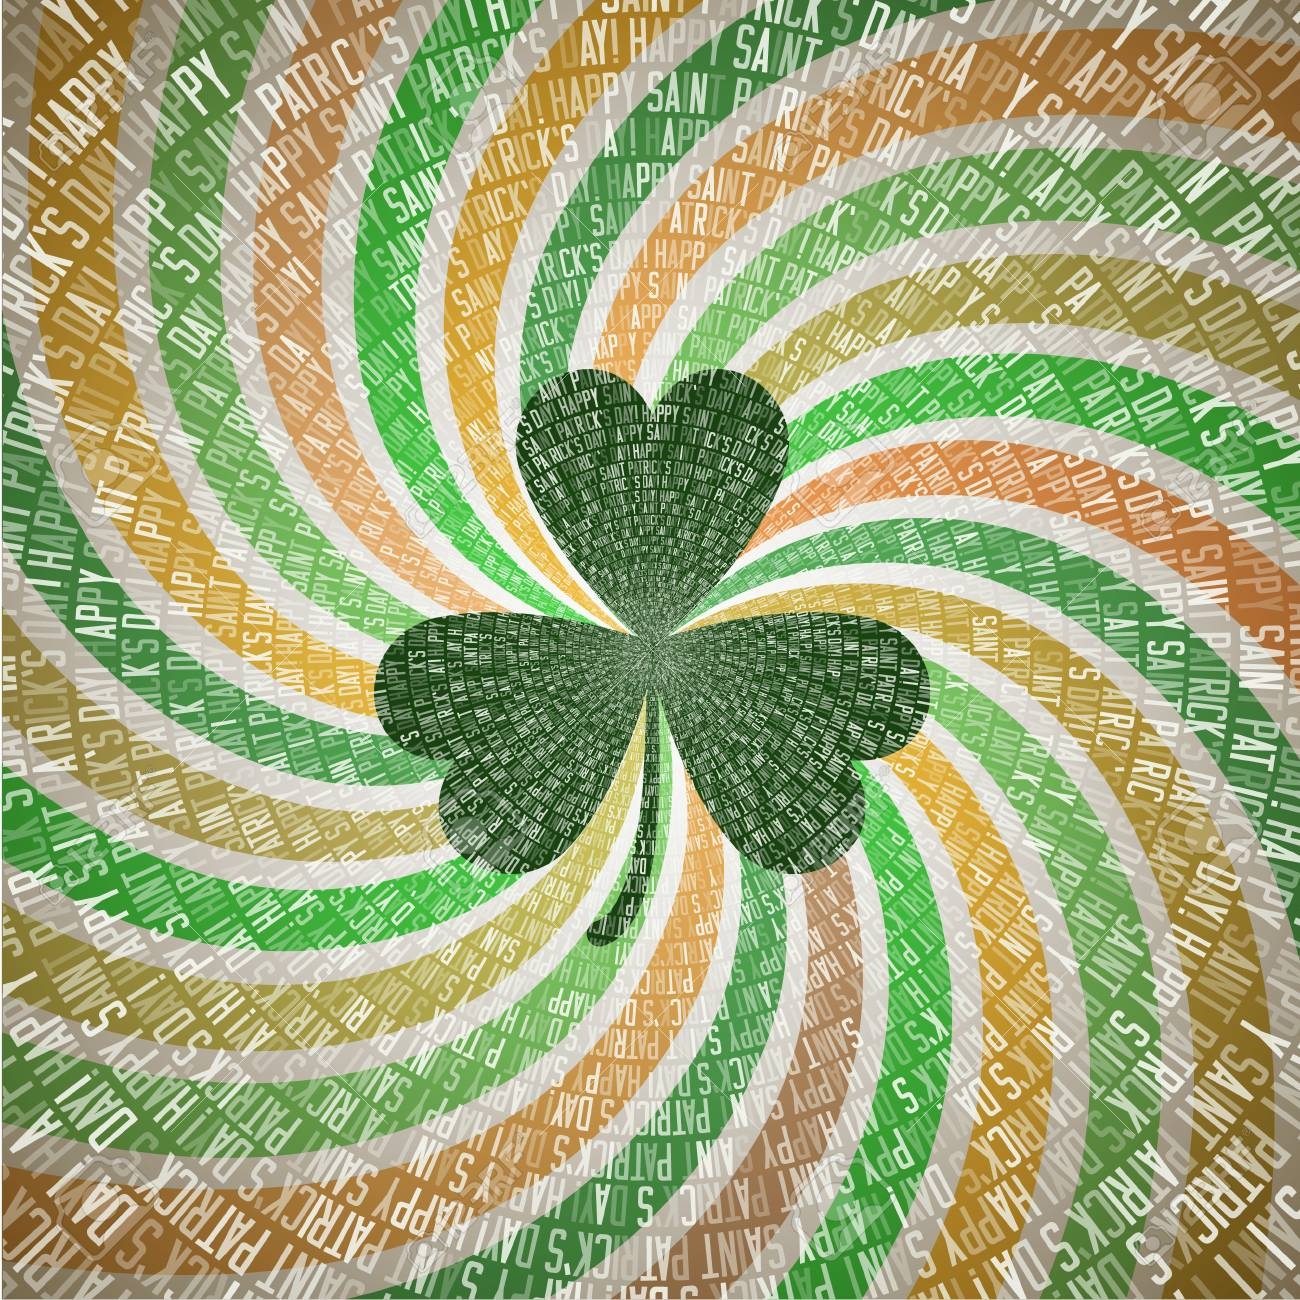 Happy Saint Patricks Day Greeting Card With Clover Leaf On Abstract